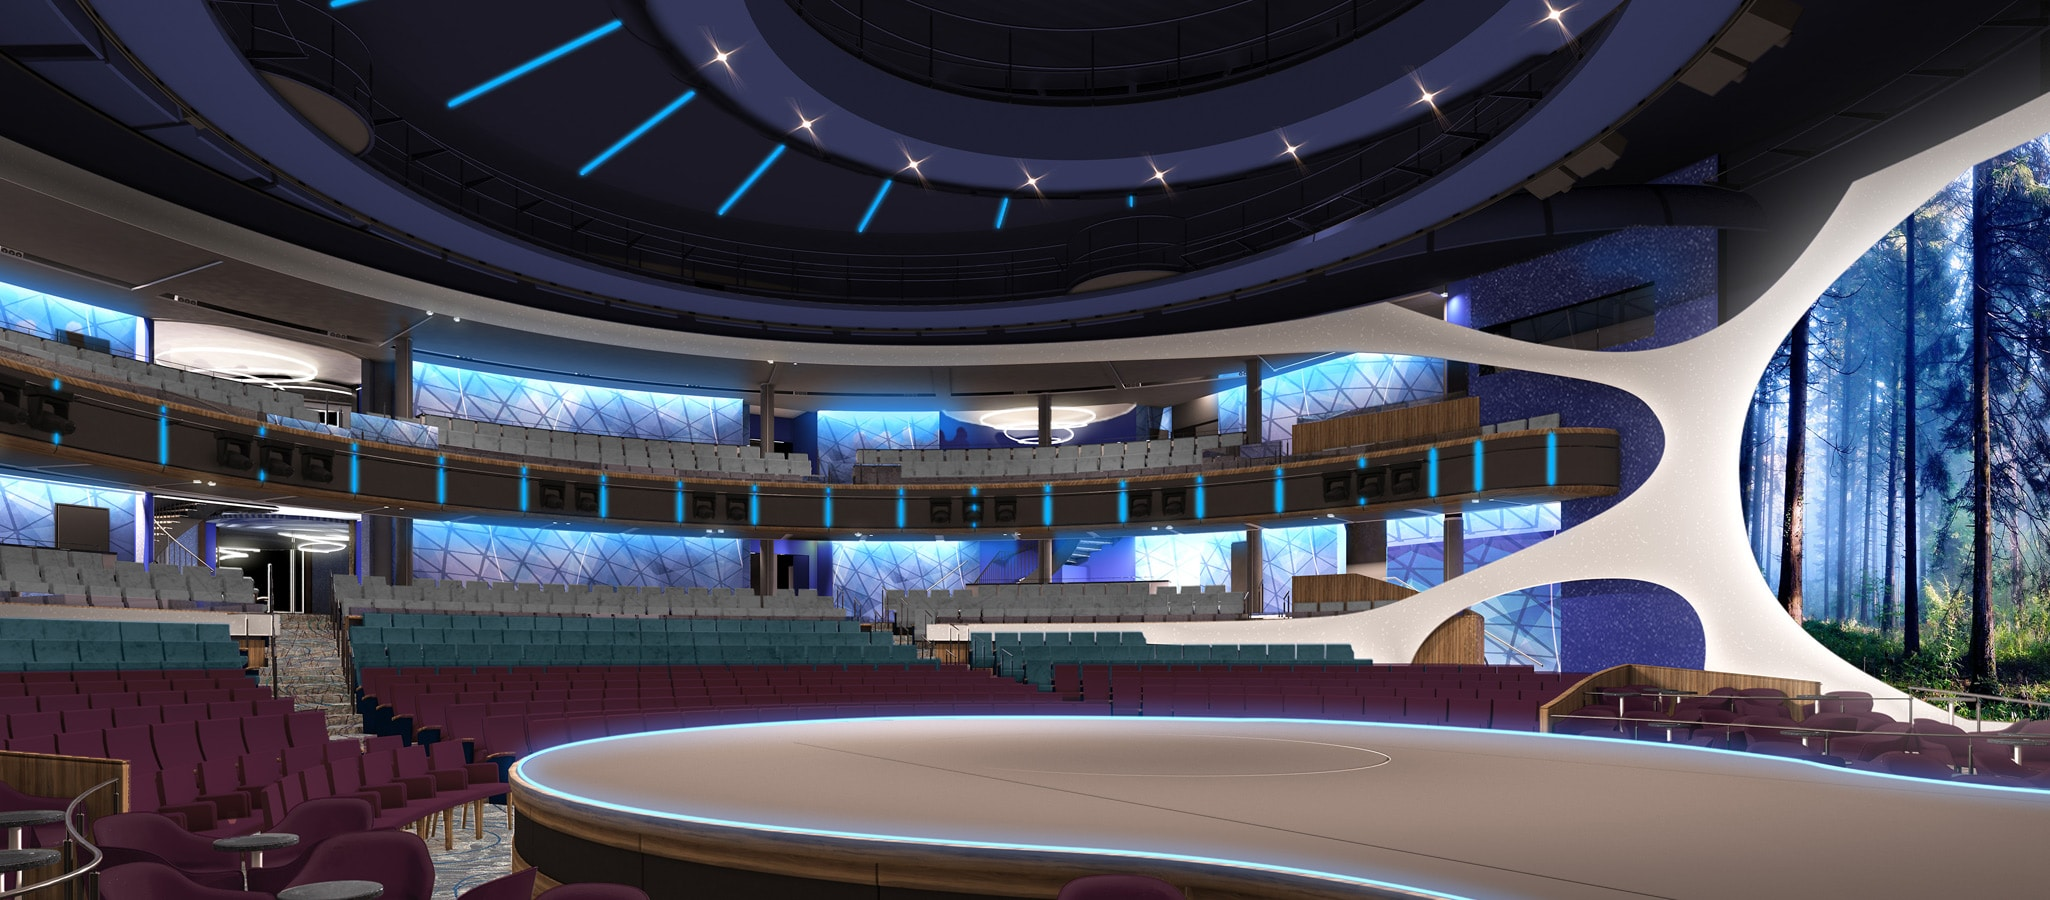 Conference Theaters feature cutting-edge sound, light and projection systems as well as crowd pleasing built-in décor.